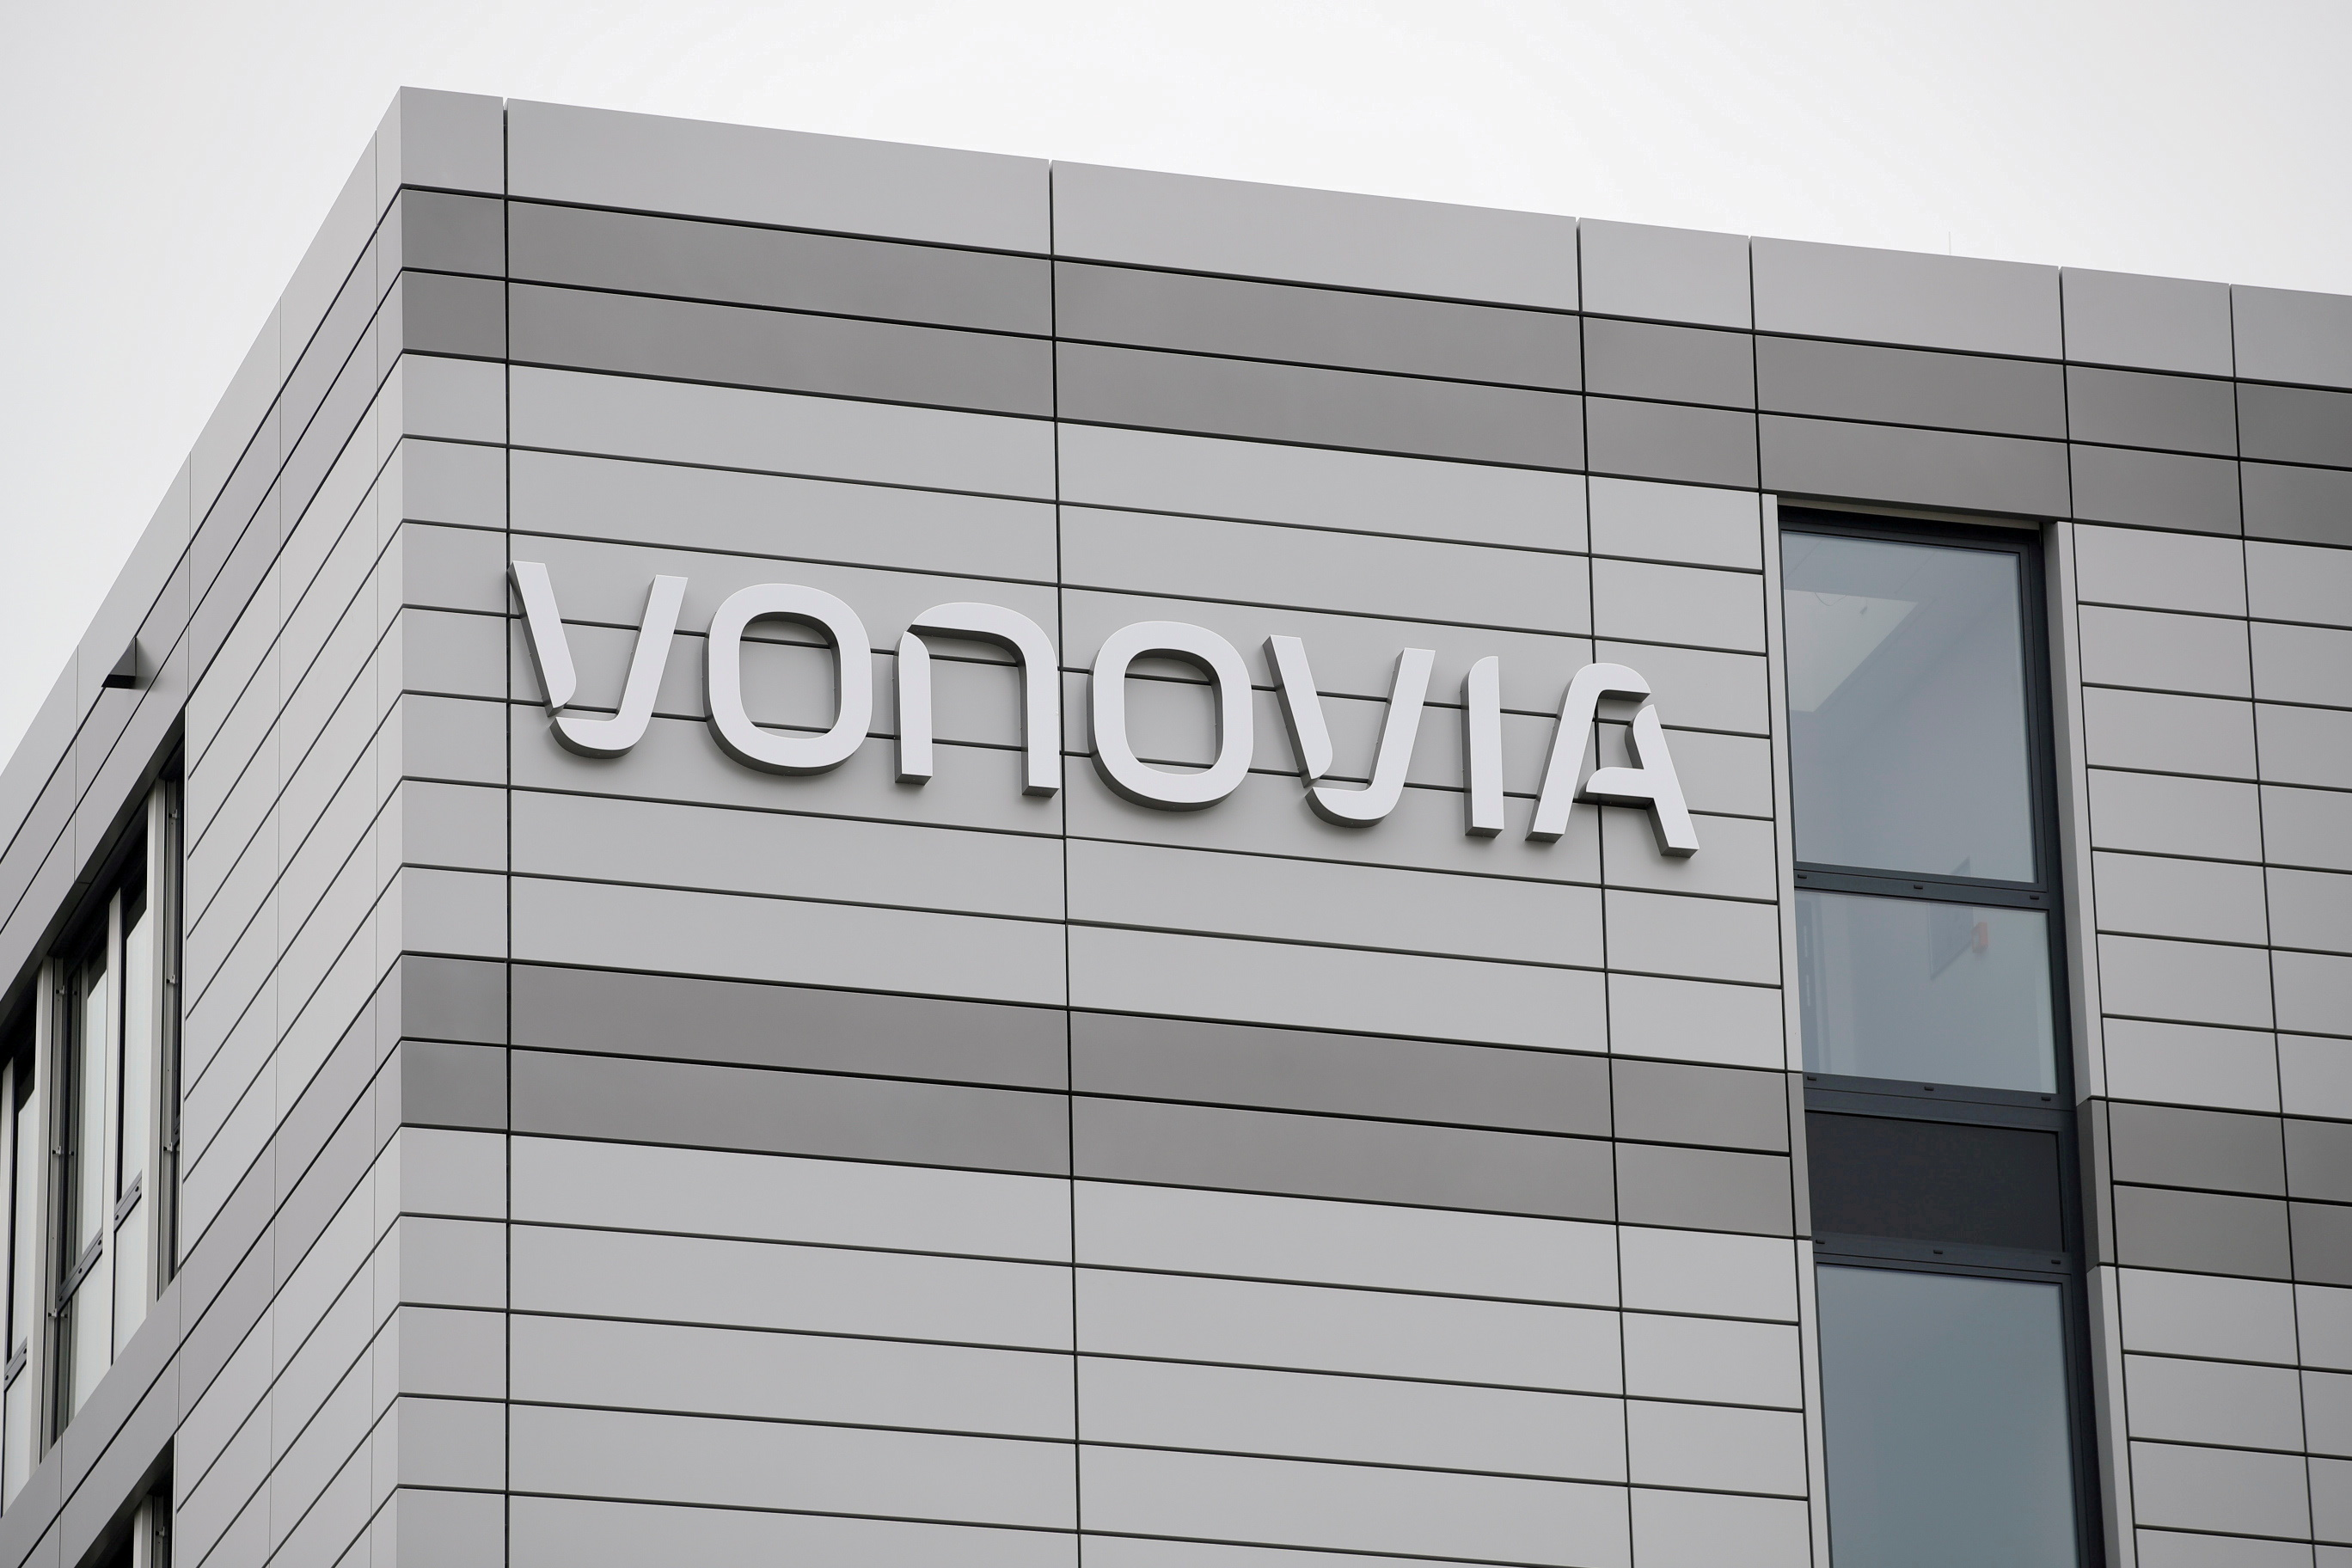 The new headquarters of German real estate company Vonovia is pictured in Bochum, Germany, April 24, 2018. REUTERS/Wolfgang Rattay/File Photo